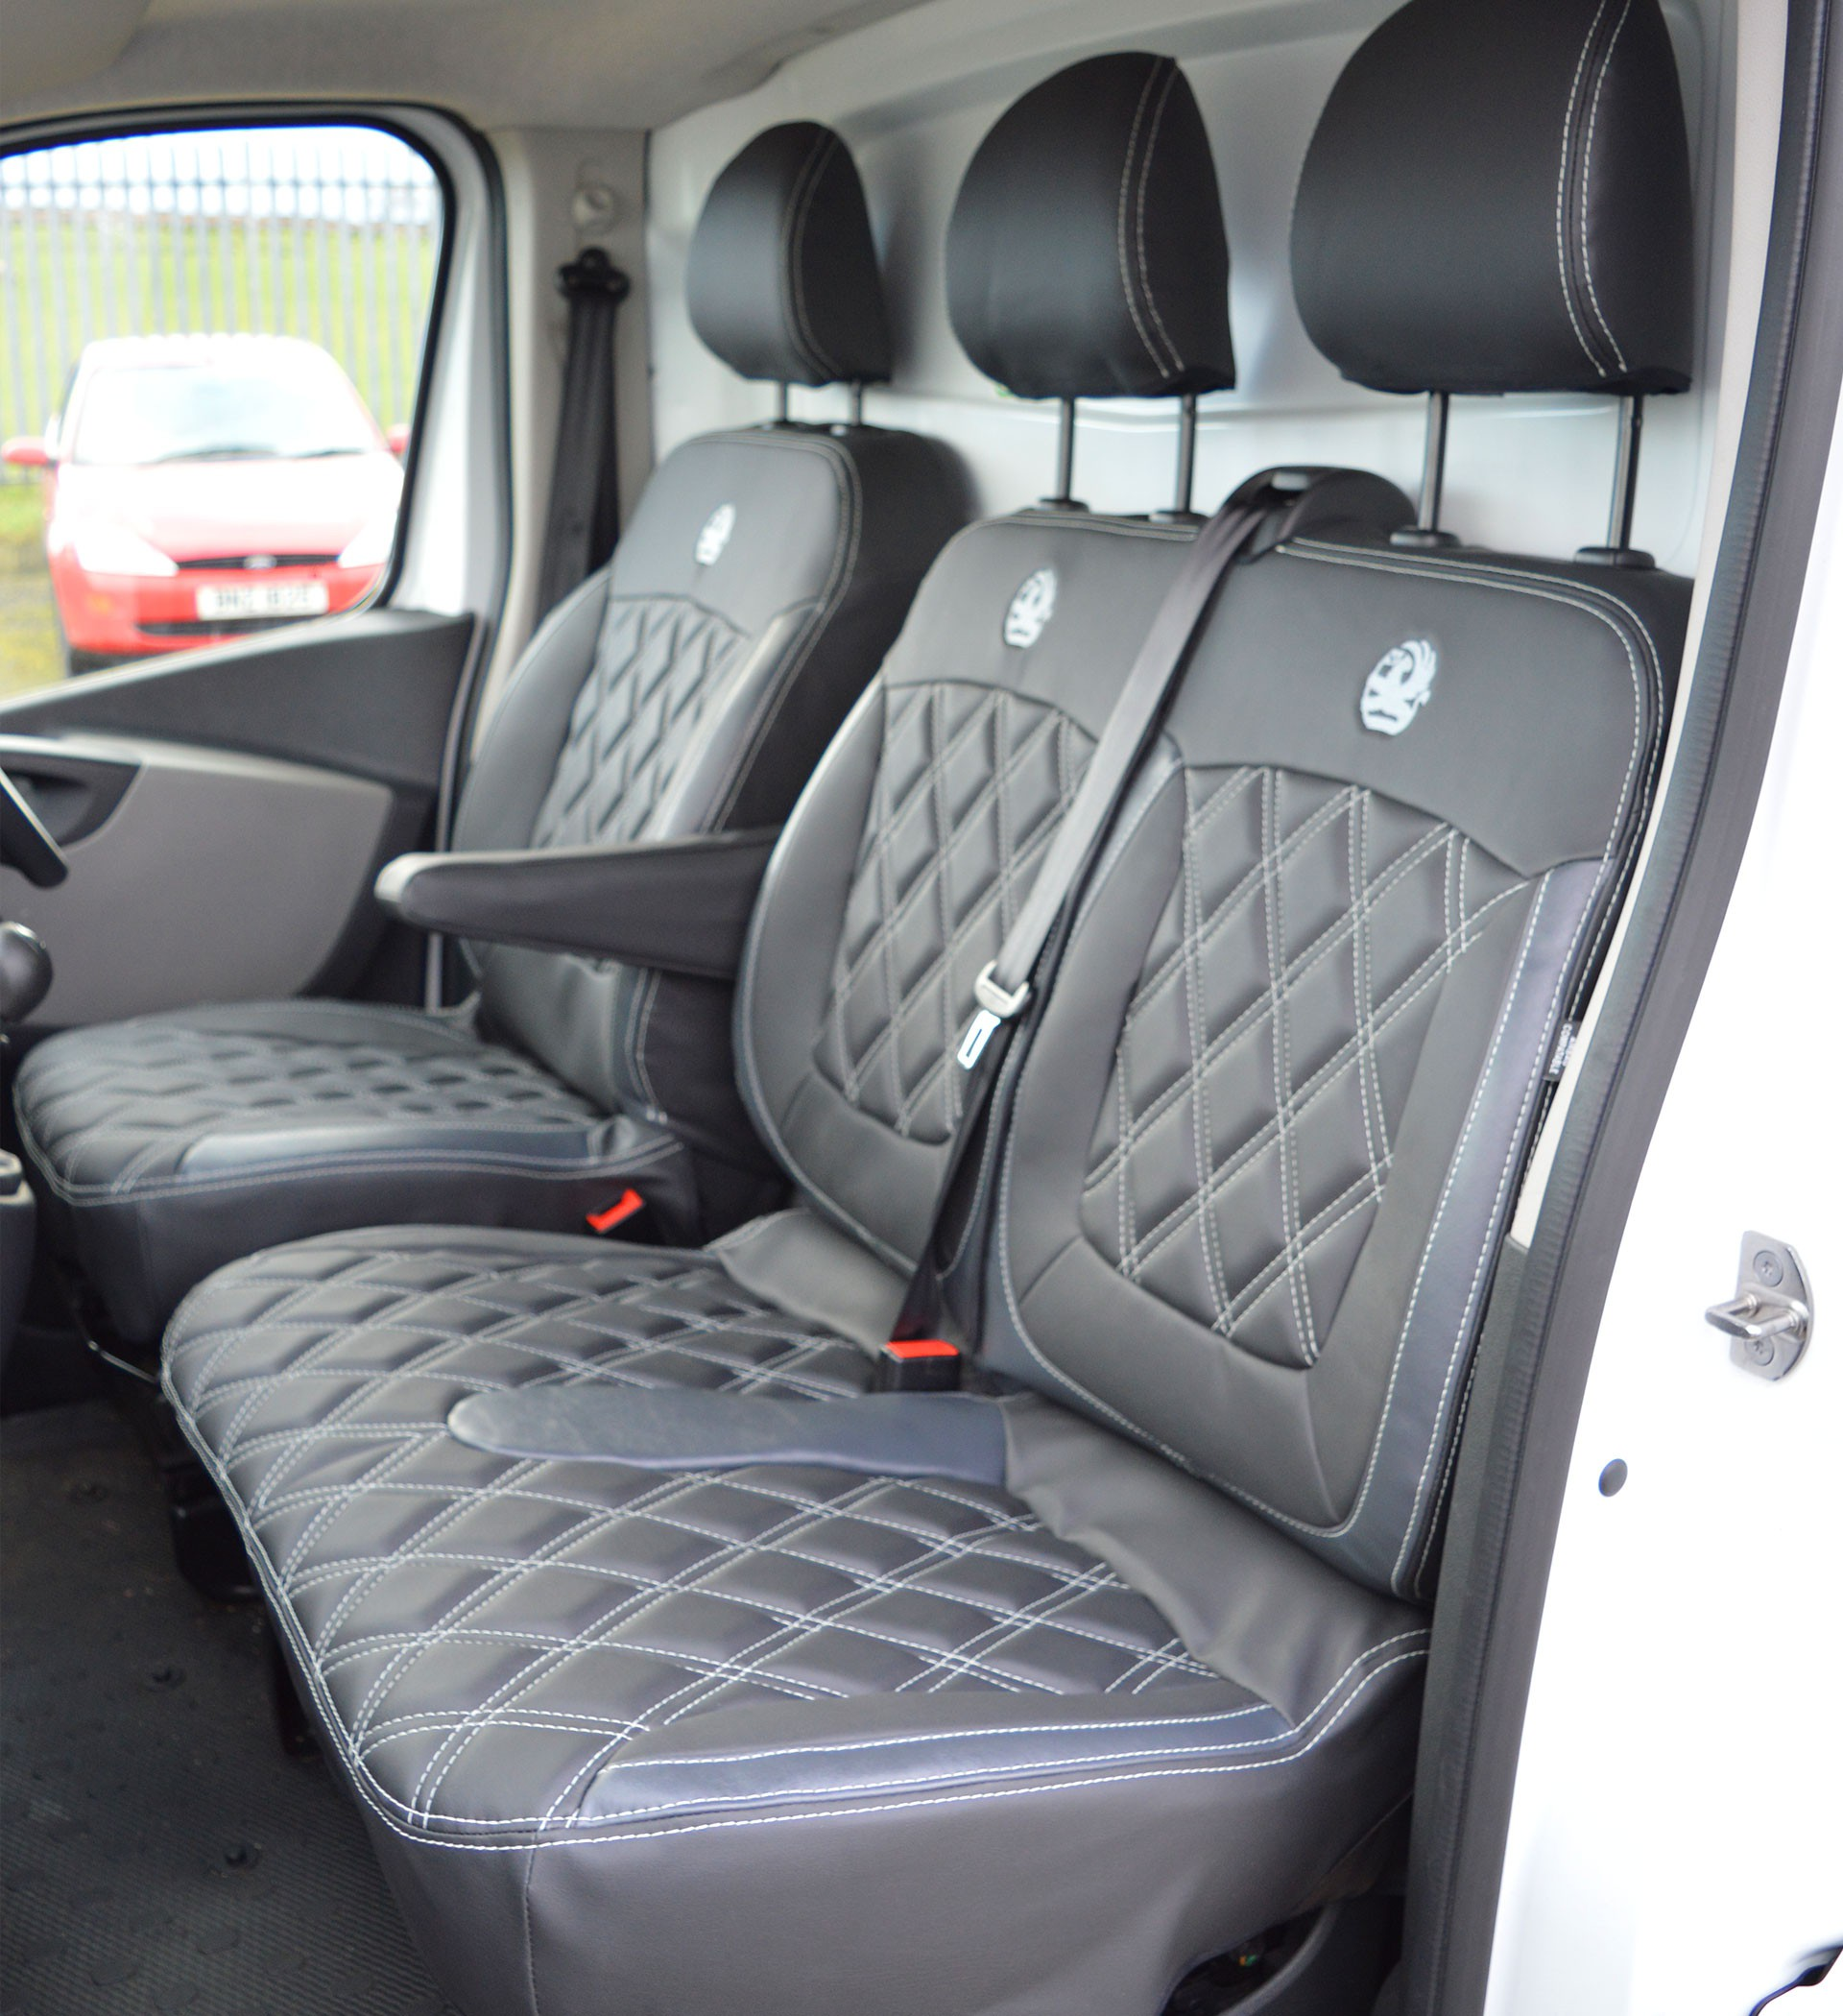 Rhinos-Autostyling FOR PEUGEOT EXPERT 2017 1 2 Premium Van Seat Covers Single Drivers And Double Passengers Seat Covers Black Quilted Diamond Leather